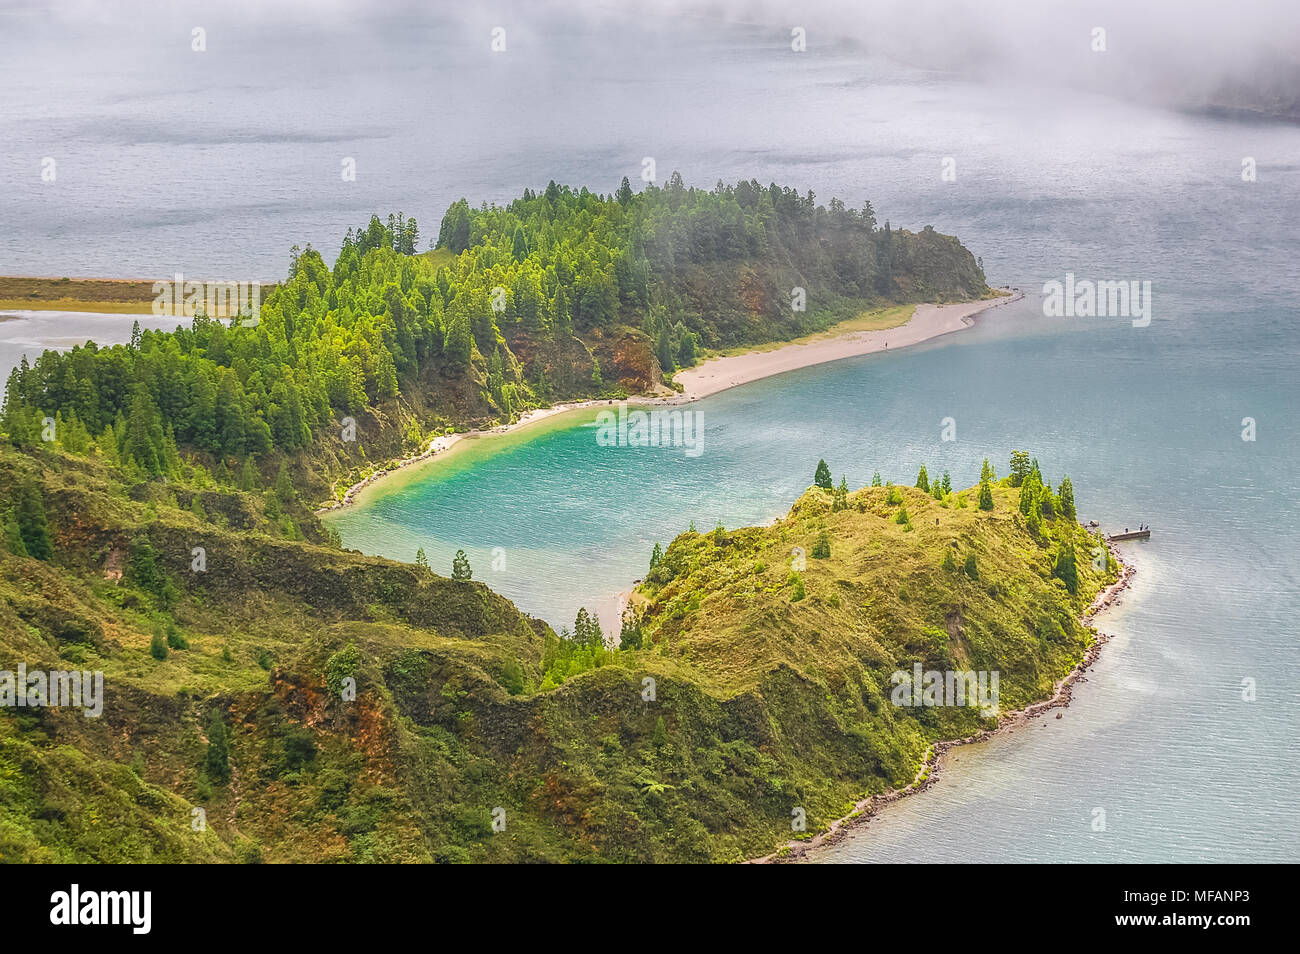 Sete Cidades lake view on Azores Islands in Portugal.Stock Photo